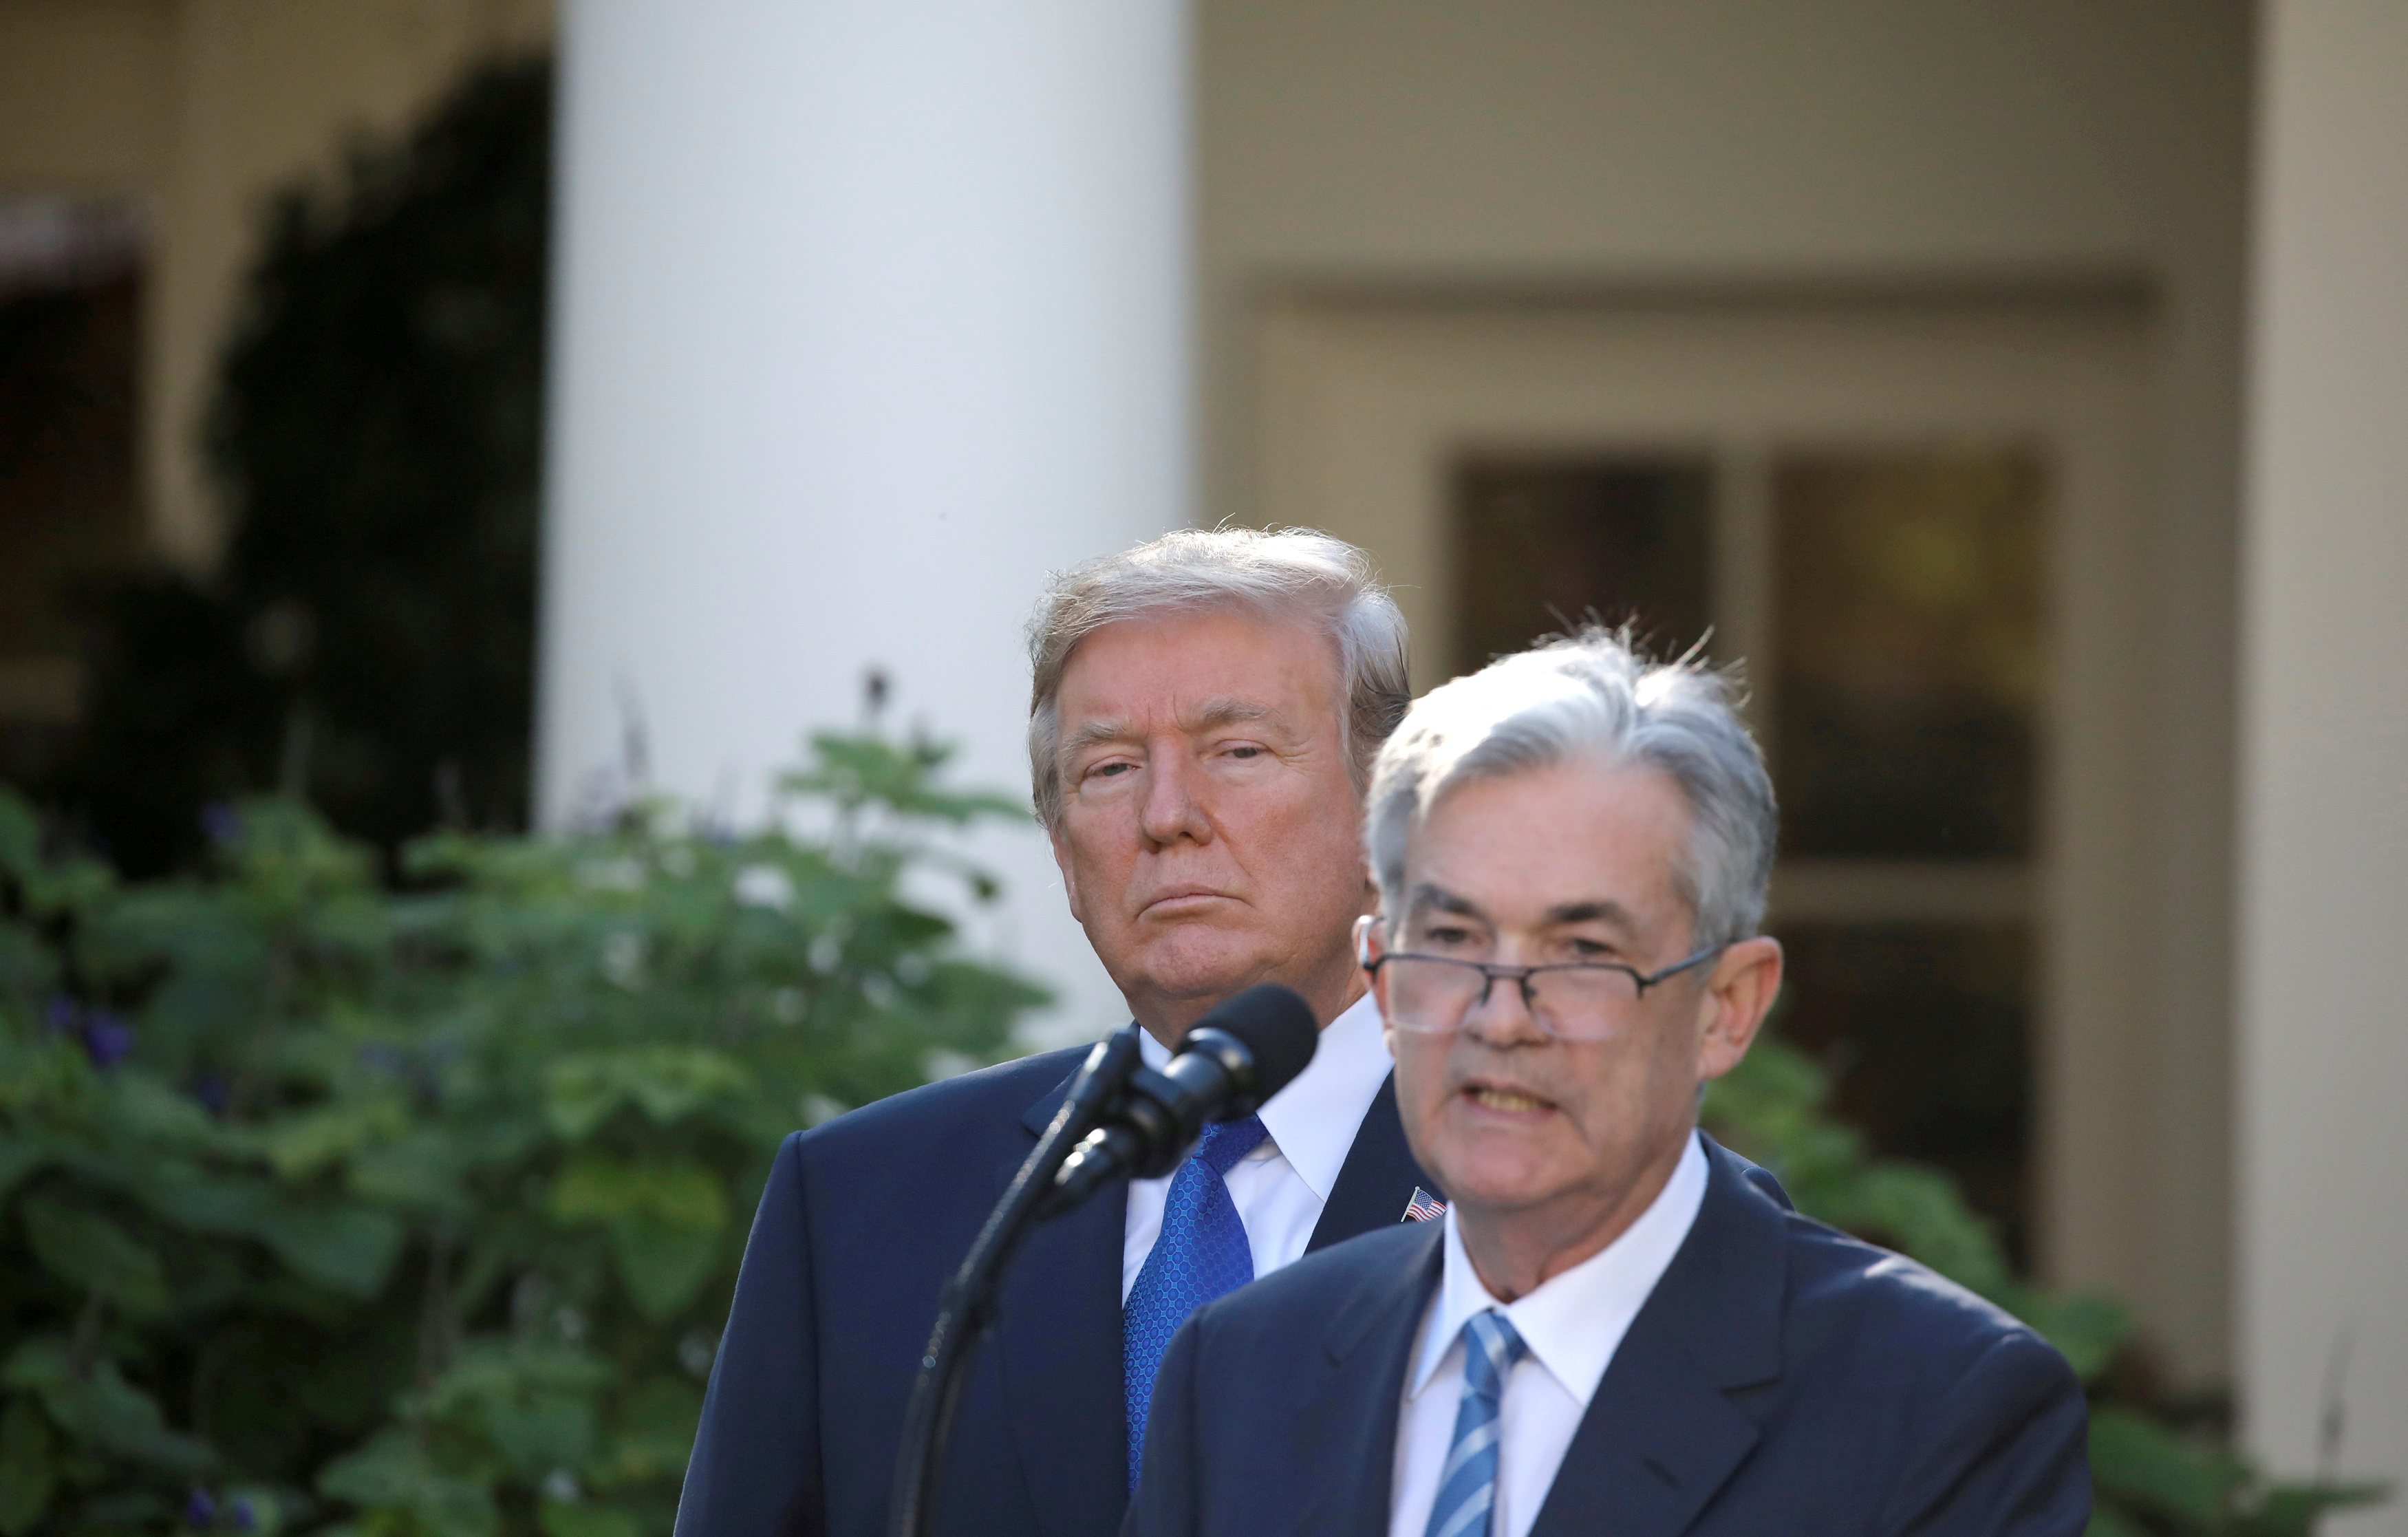 Trump says Fed Chair Jerome Powell's job is 'safe' after having slammed him for 'no guts'